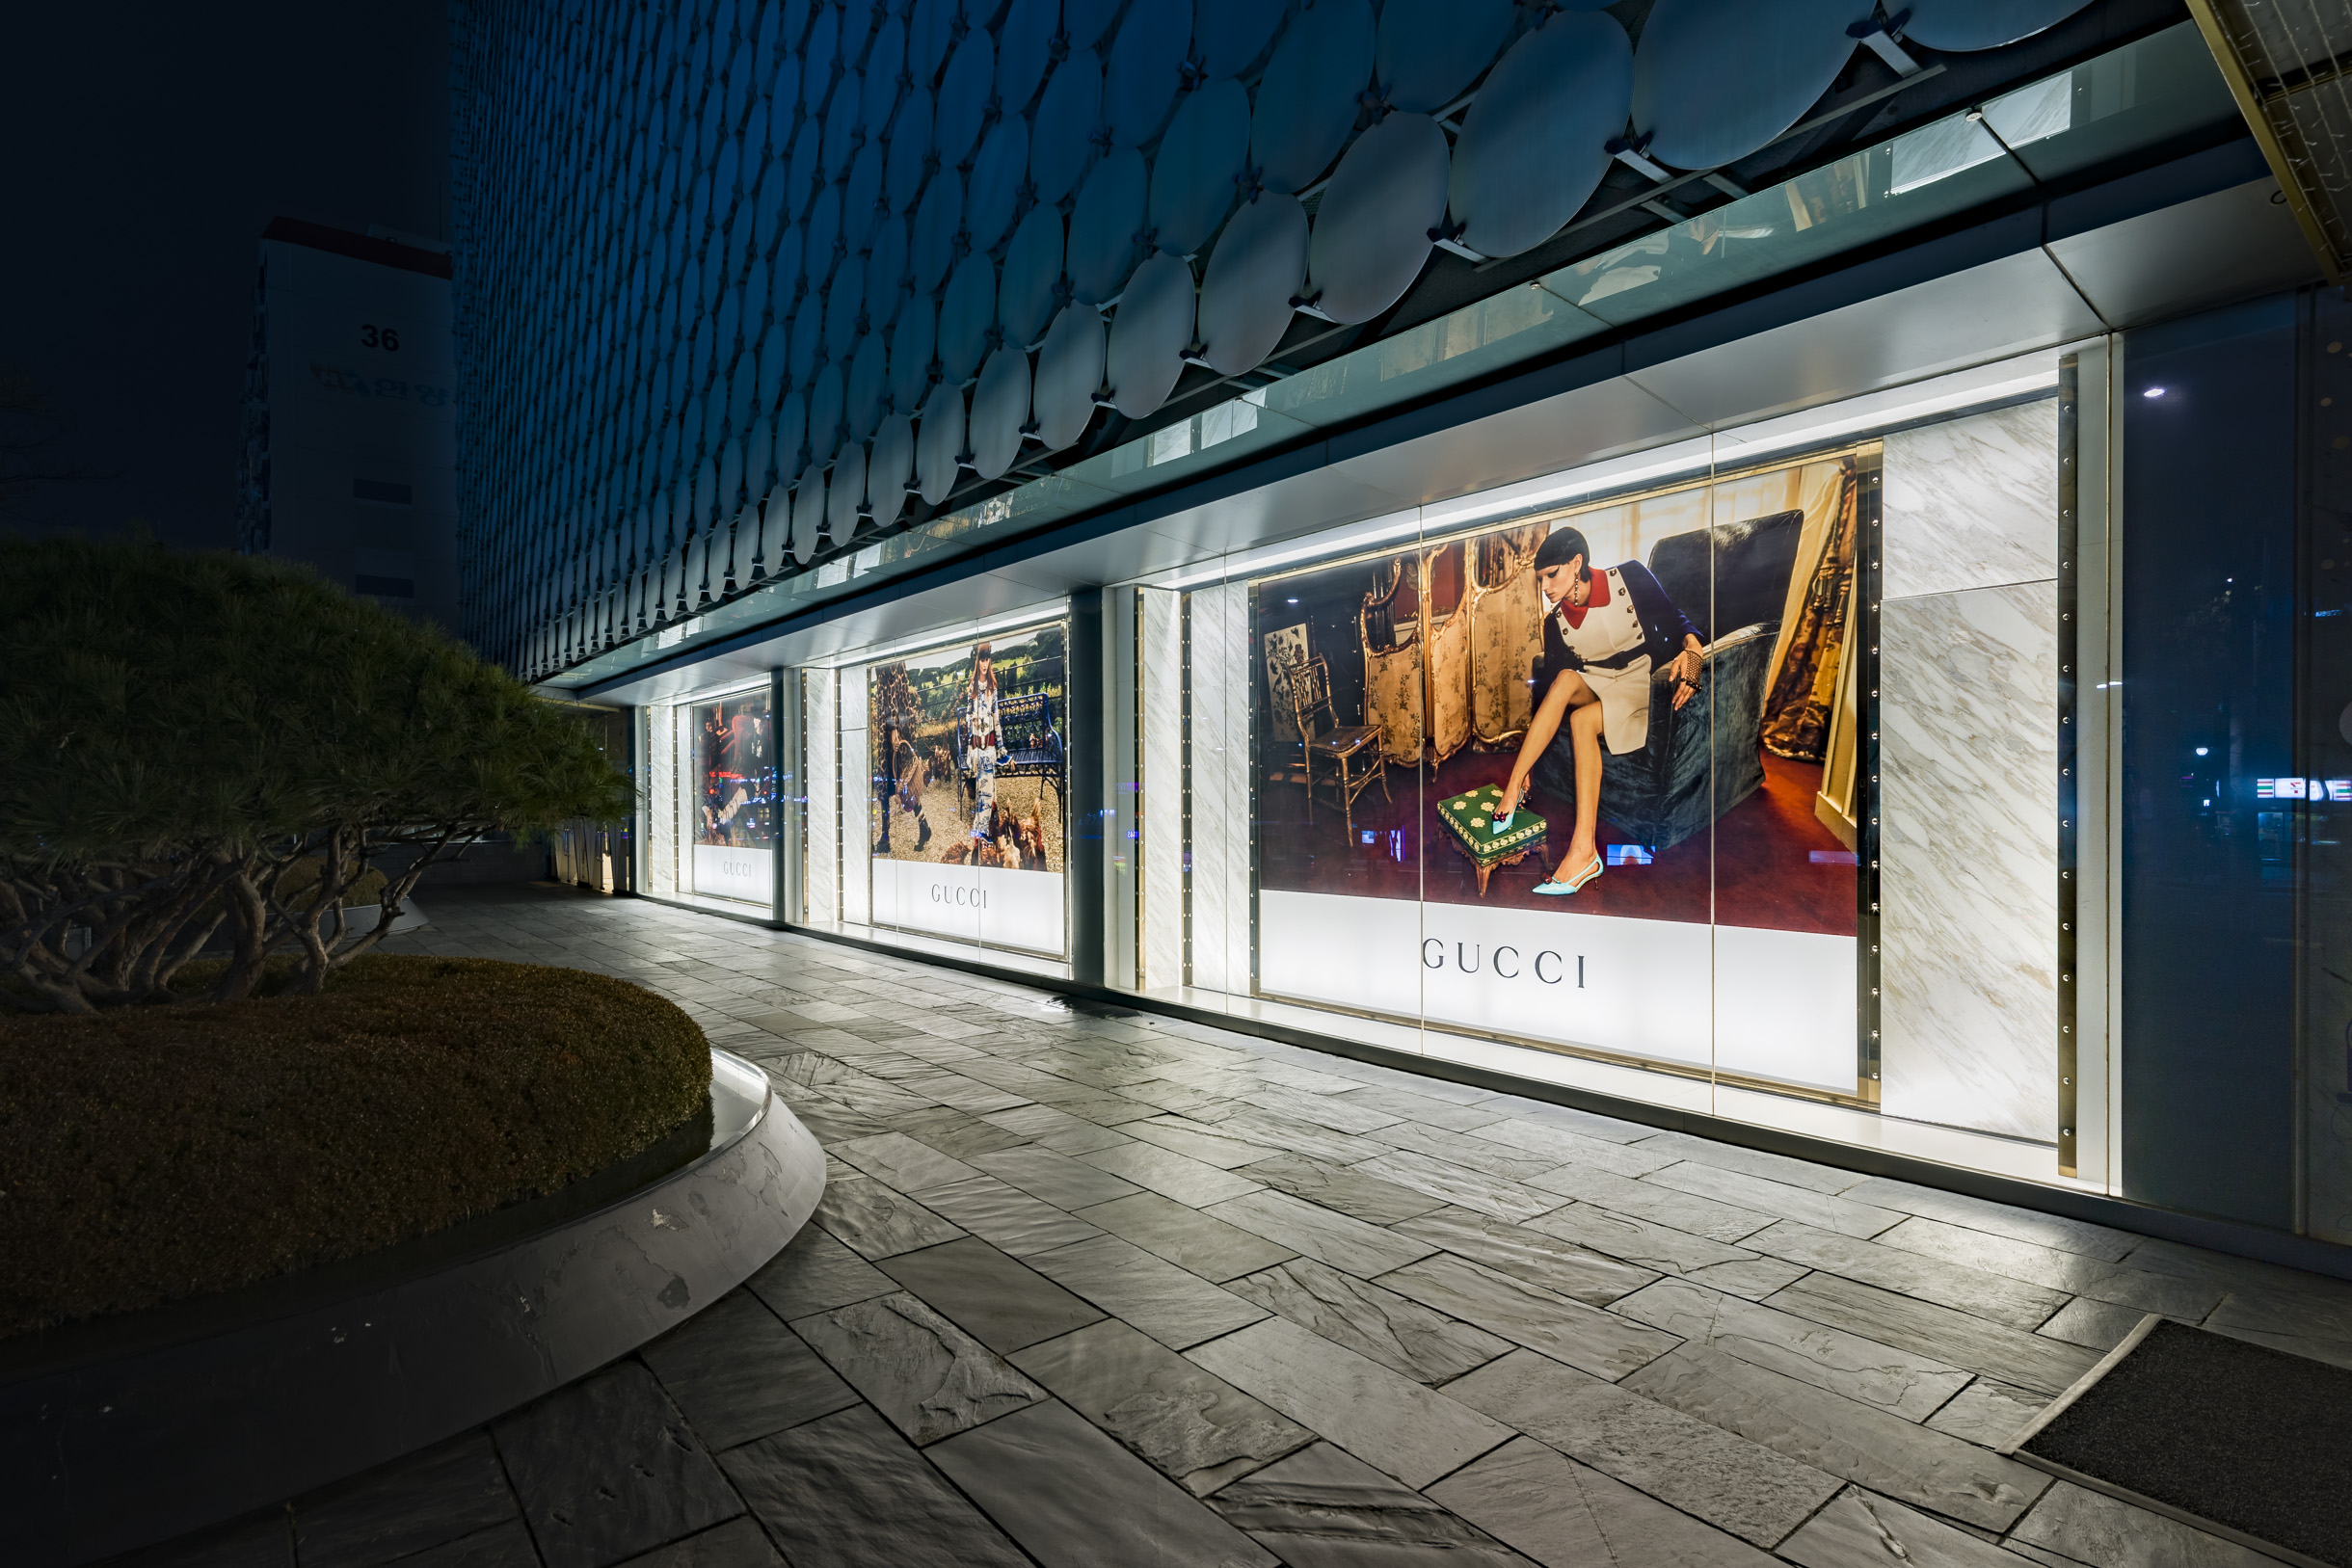 Gucci shop at Galleria in Seoul